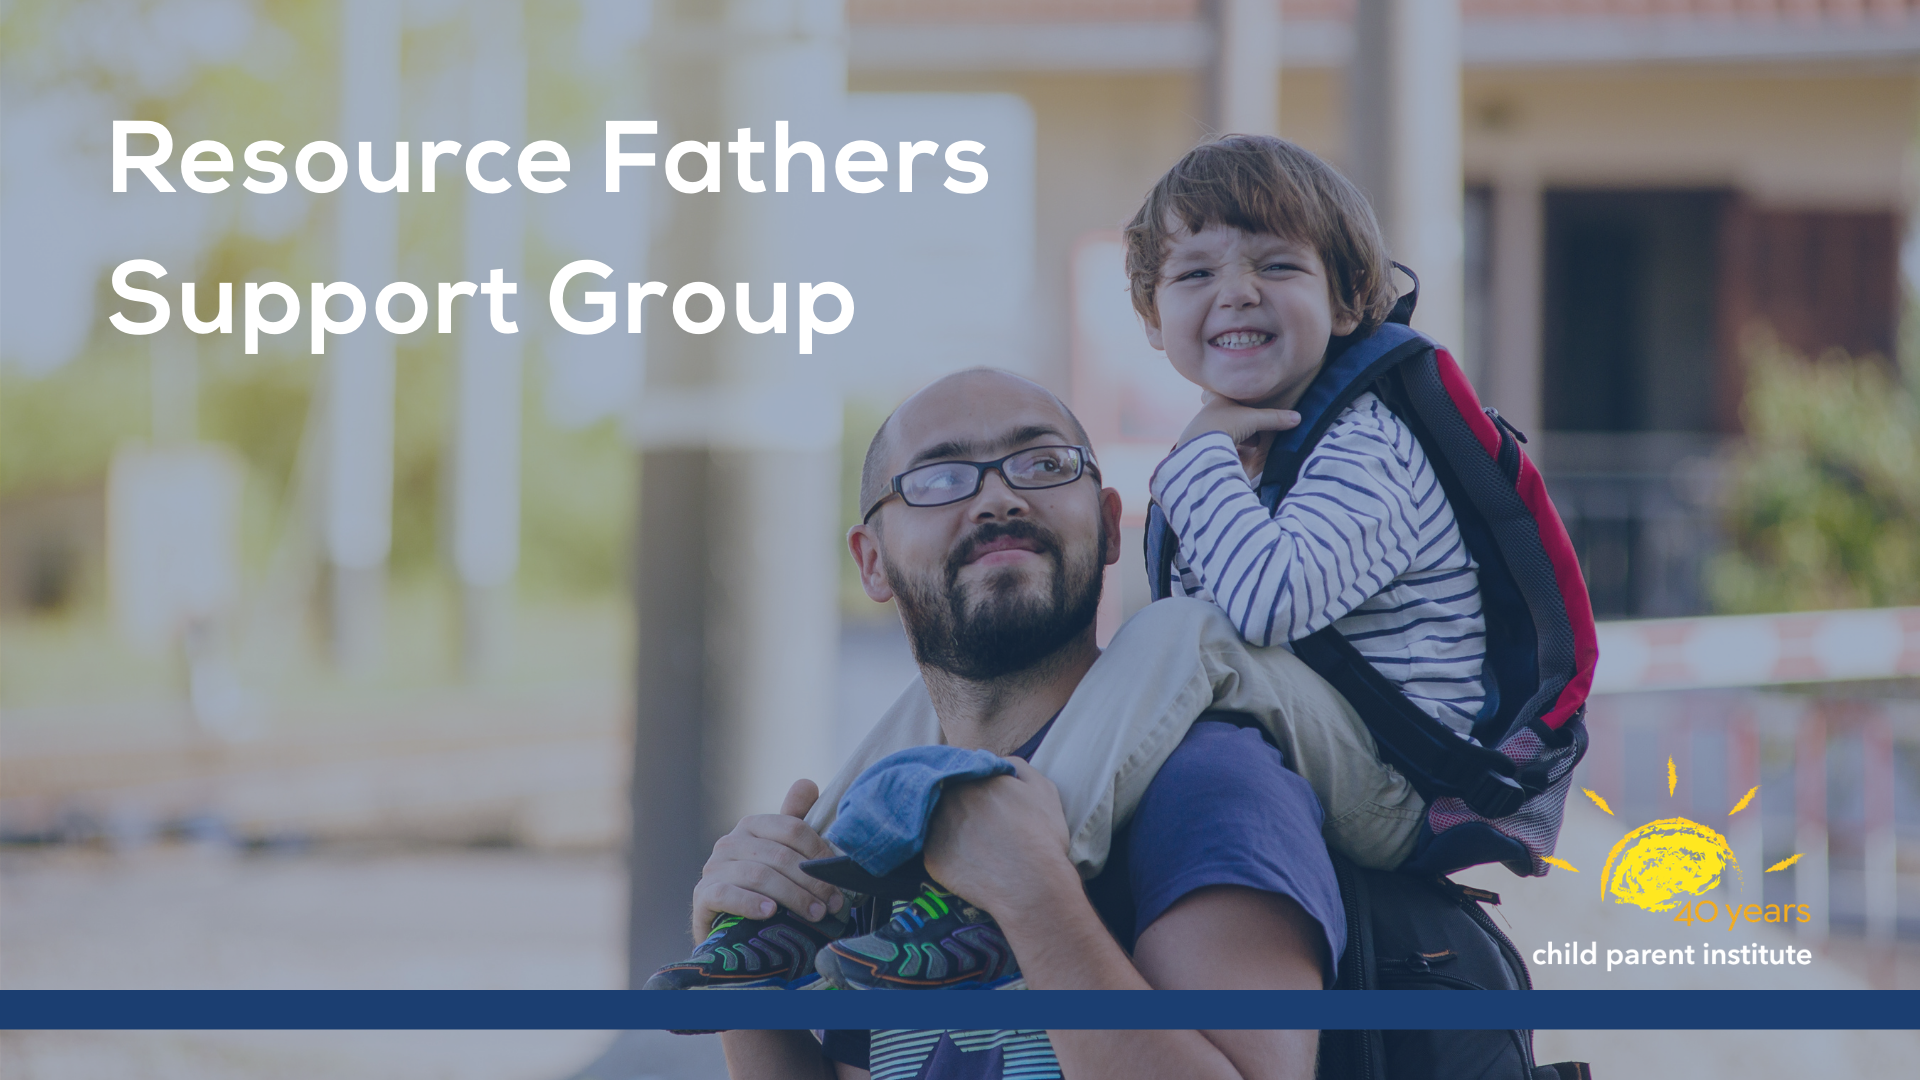 Resource Fathers Support Group